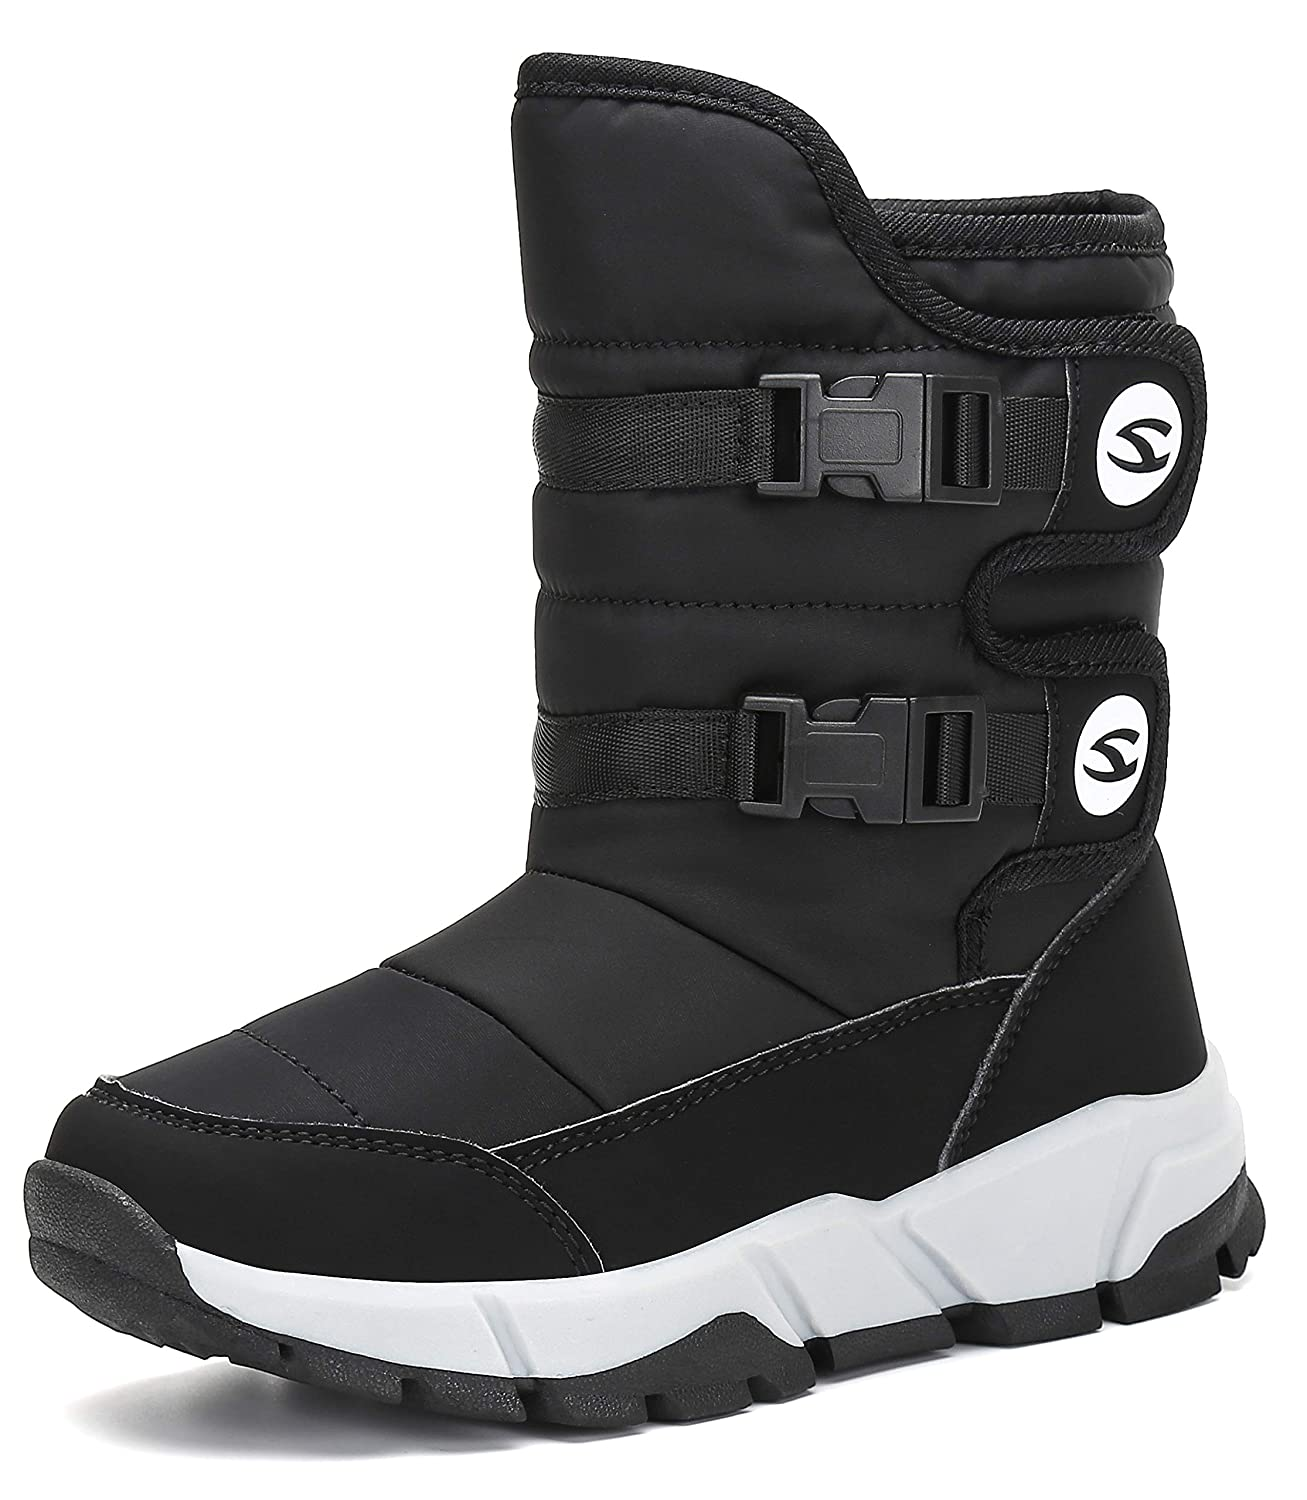 katliu Warm Lined Snow Boots for Kids